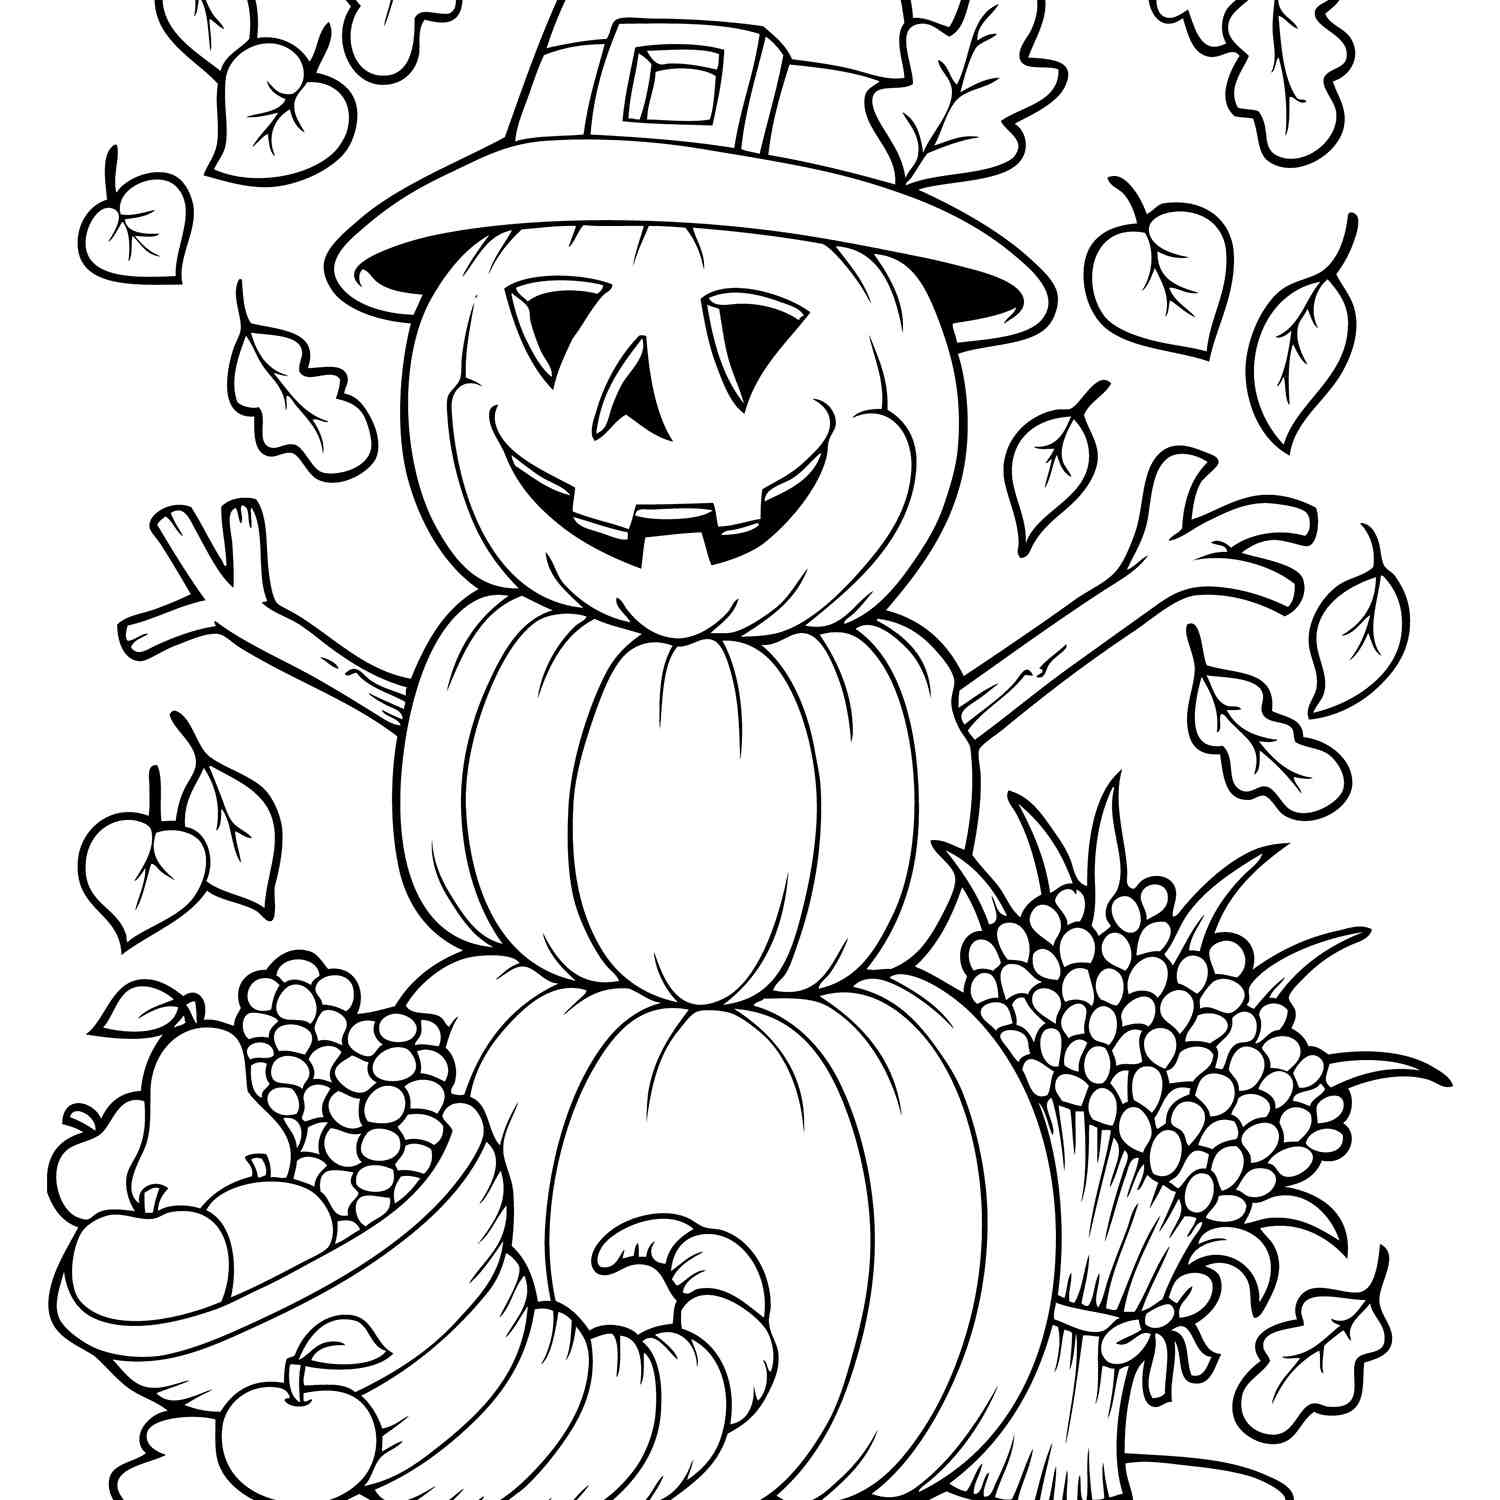 Fall Coloring Pages For Adults Free Autumn And Fall Coloring Pages